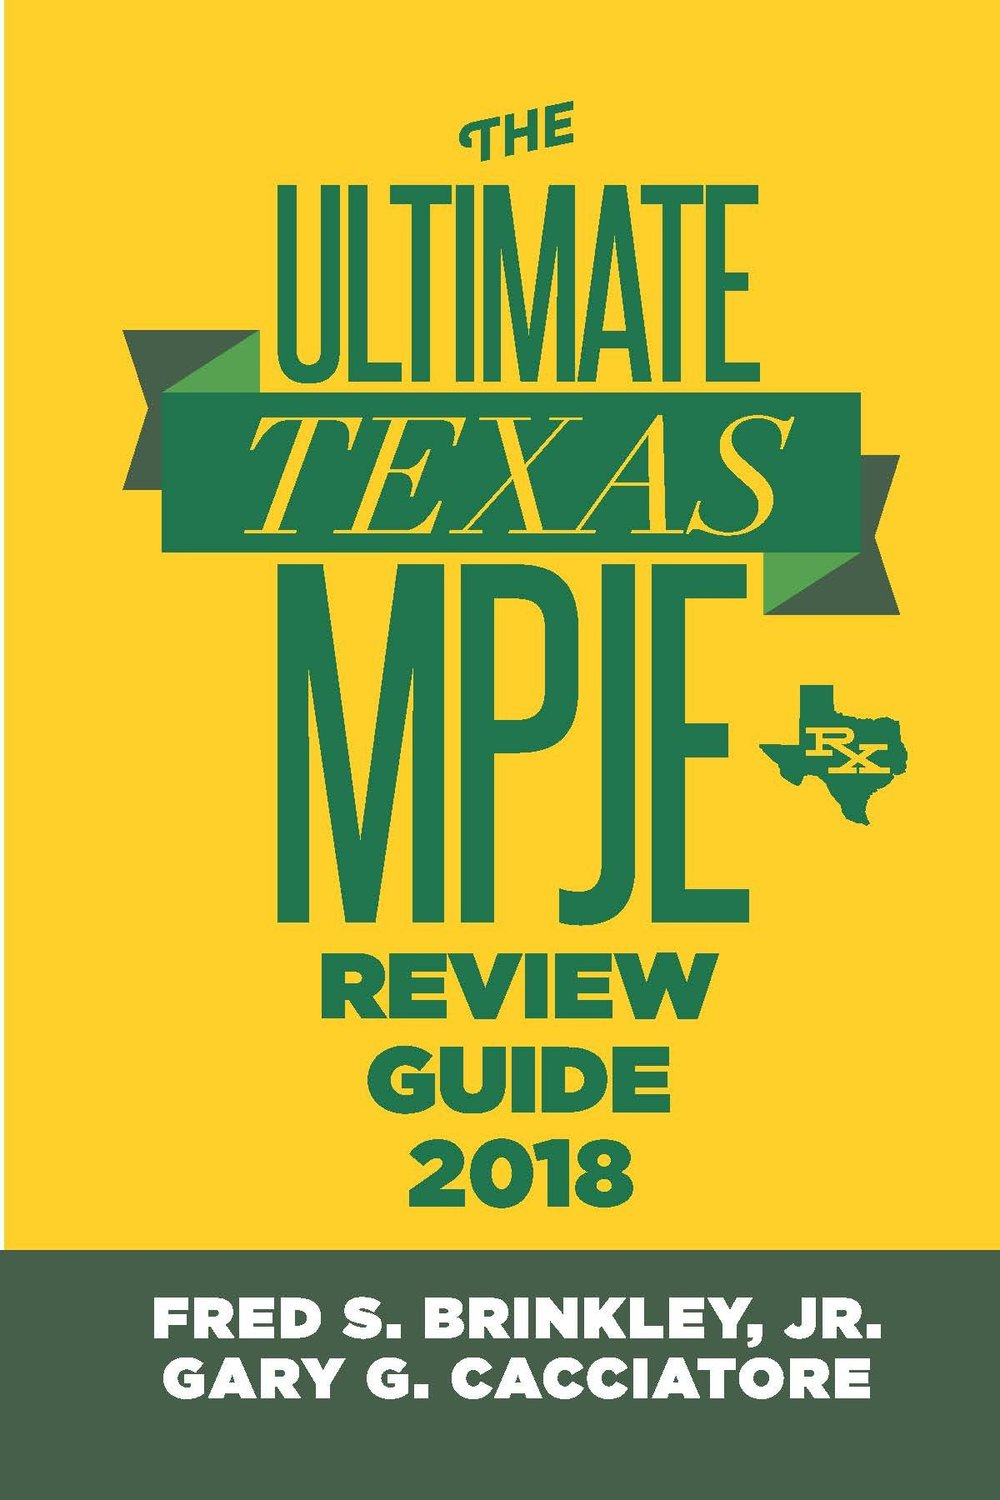 2018 Review Guide Cover.jpg